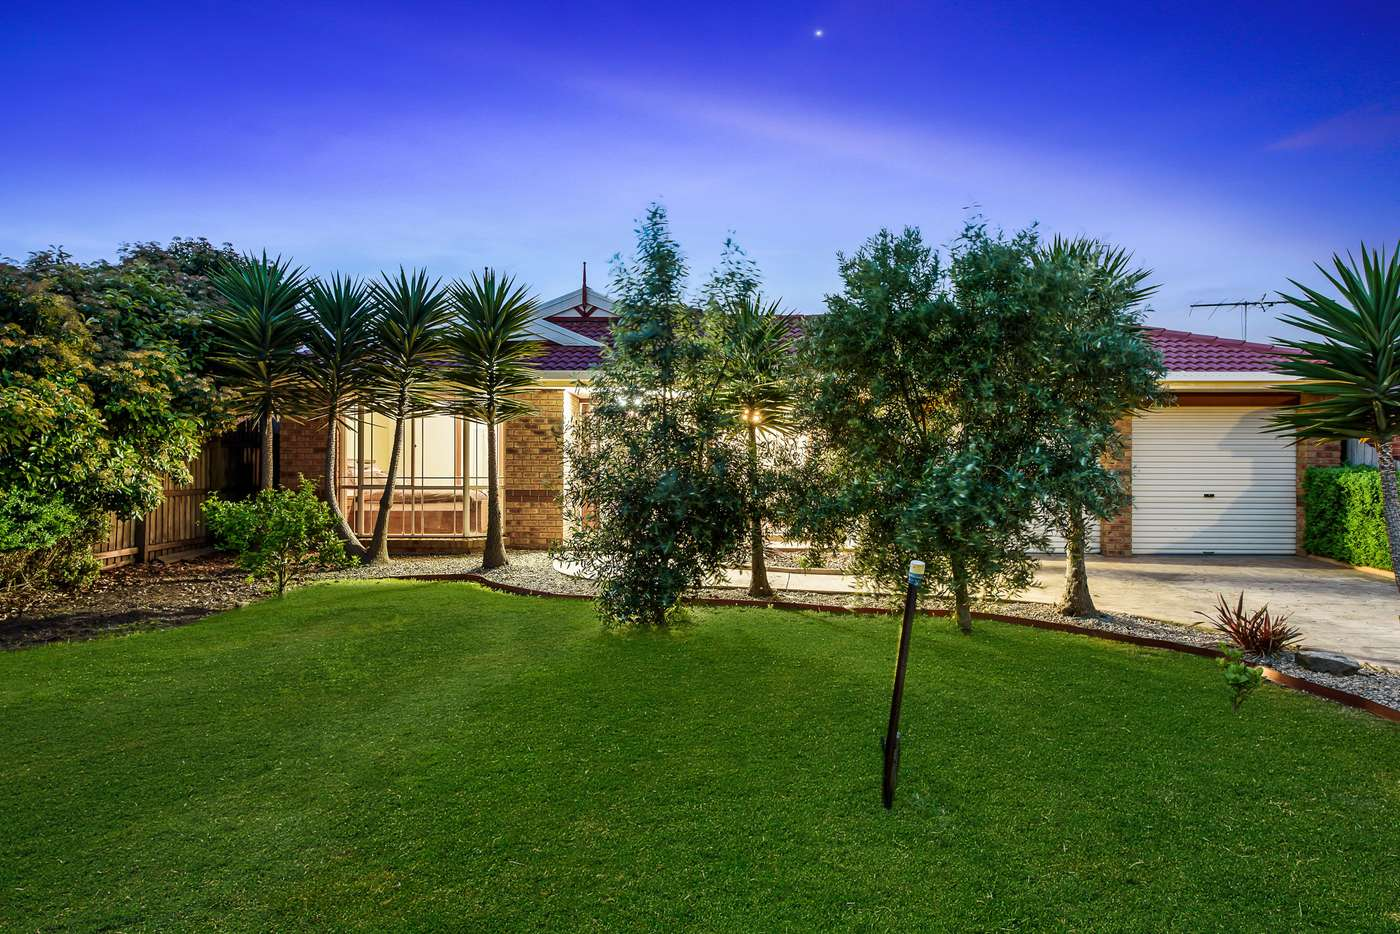 Main view of Homely house listing, 9 Sundew Close, Hillside VIC 3037